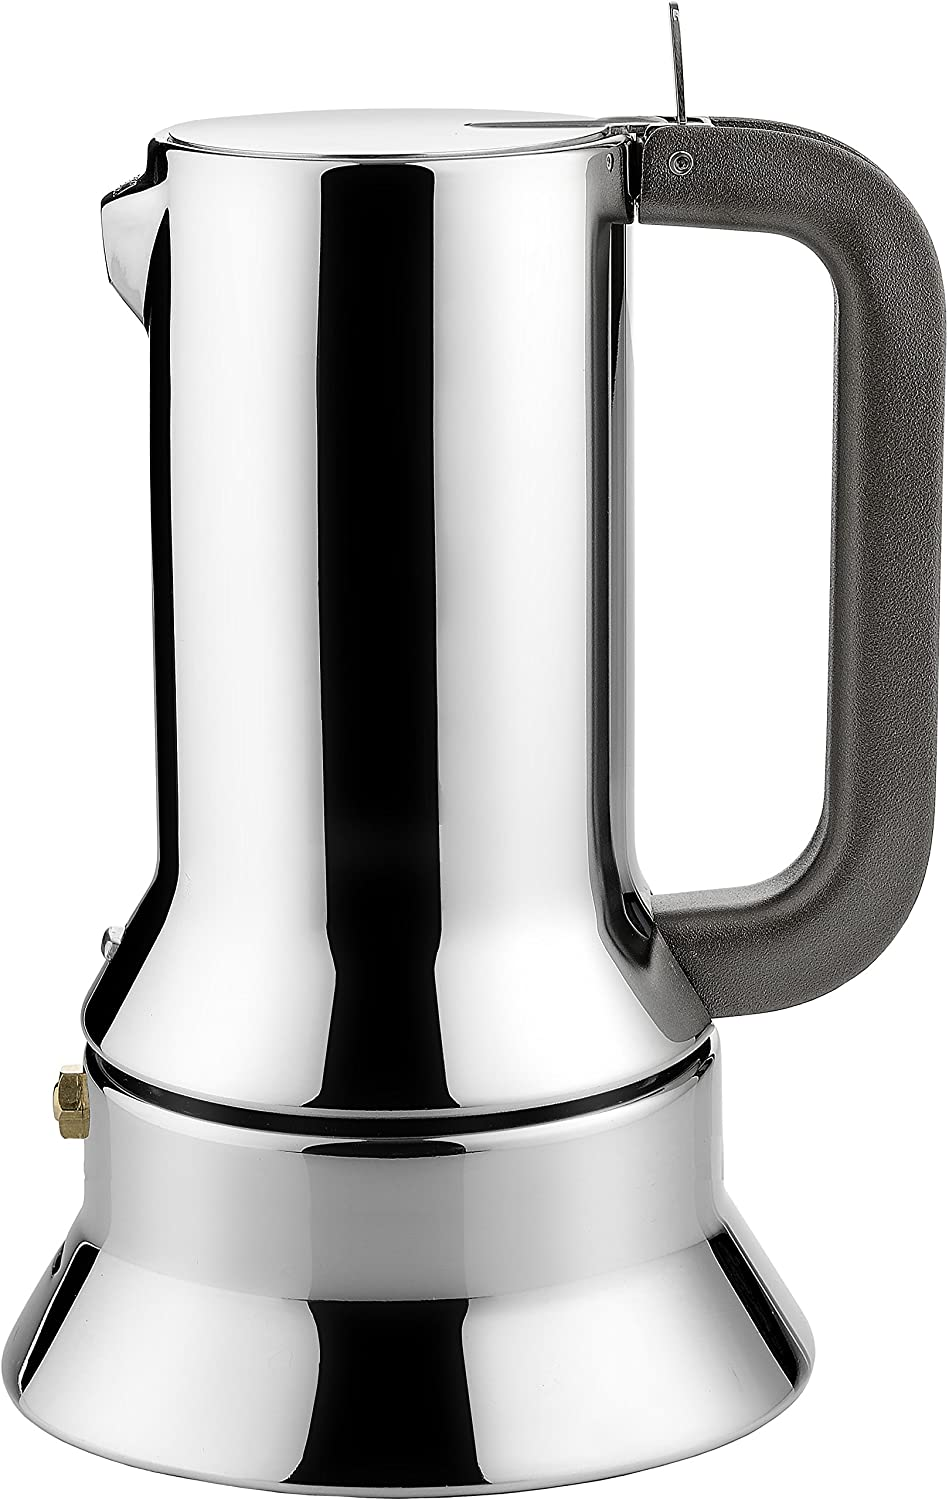 Alessi 3-Cup Espresso Coffee Maker in 18/10 Stainless Steel Mirror Polished with Magnetic Heat Diffusing Bottom 9090/3 Coffee Makers Coffee Tea & Espresso designer